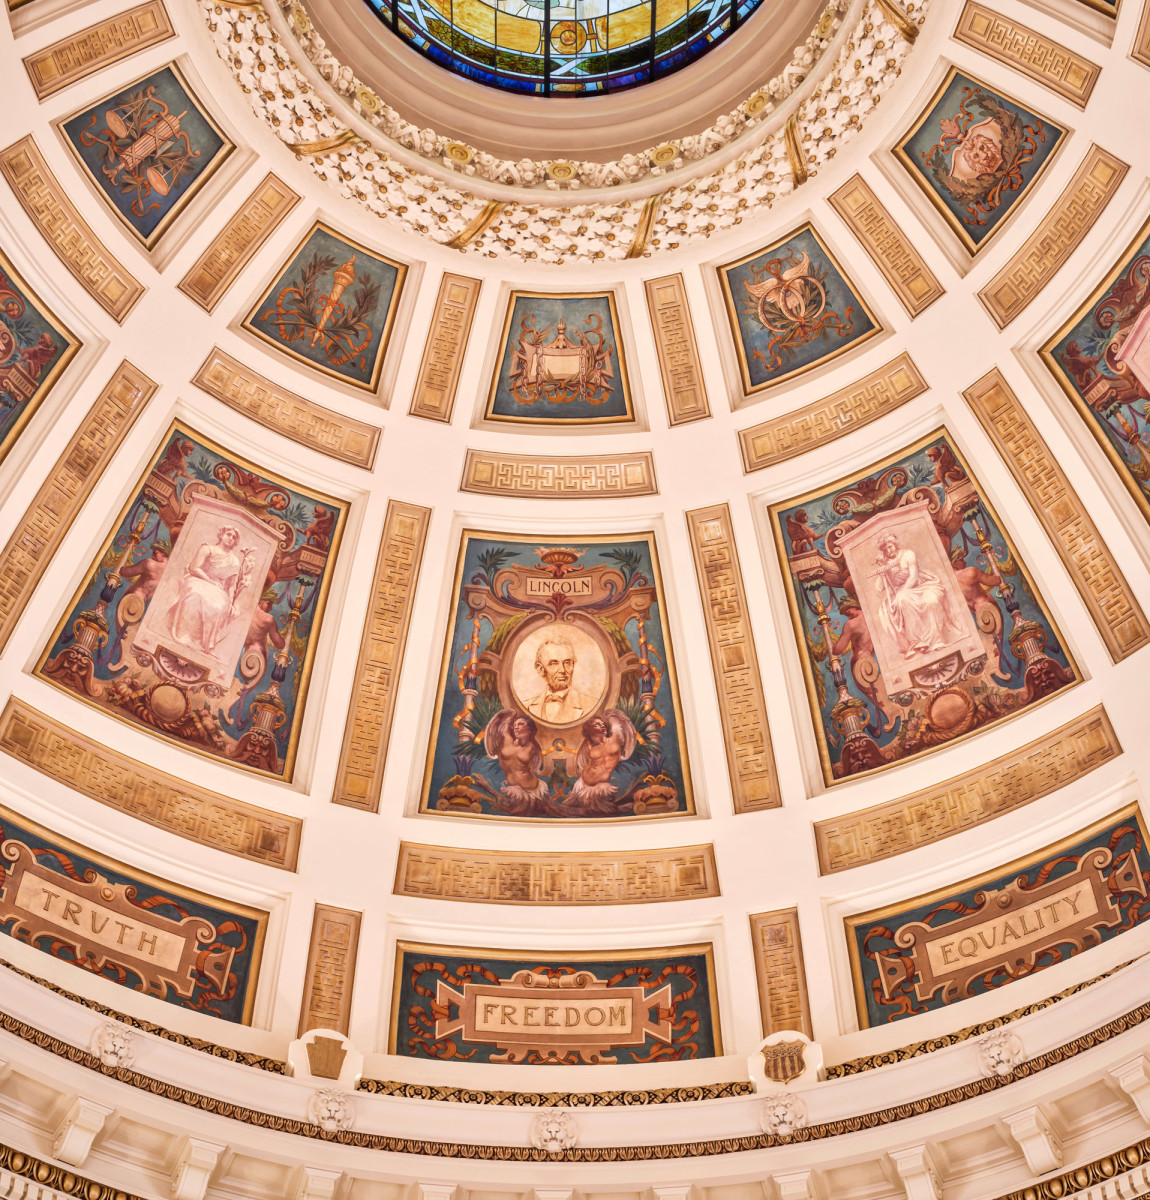 After studying historic photos, Riccio realized that the dome originally had been illuminated.